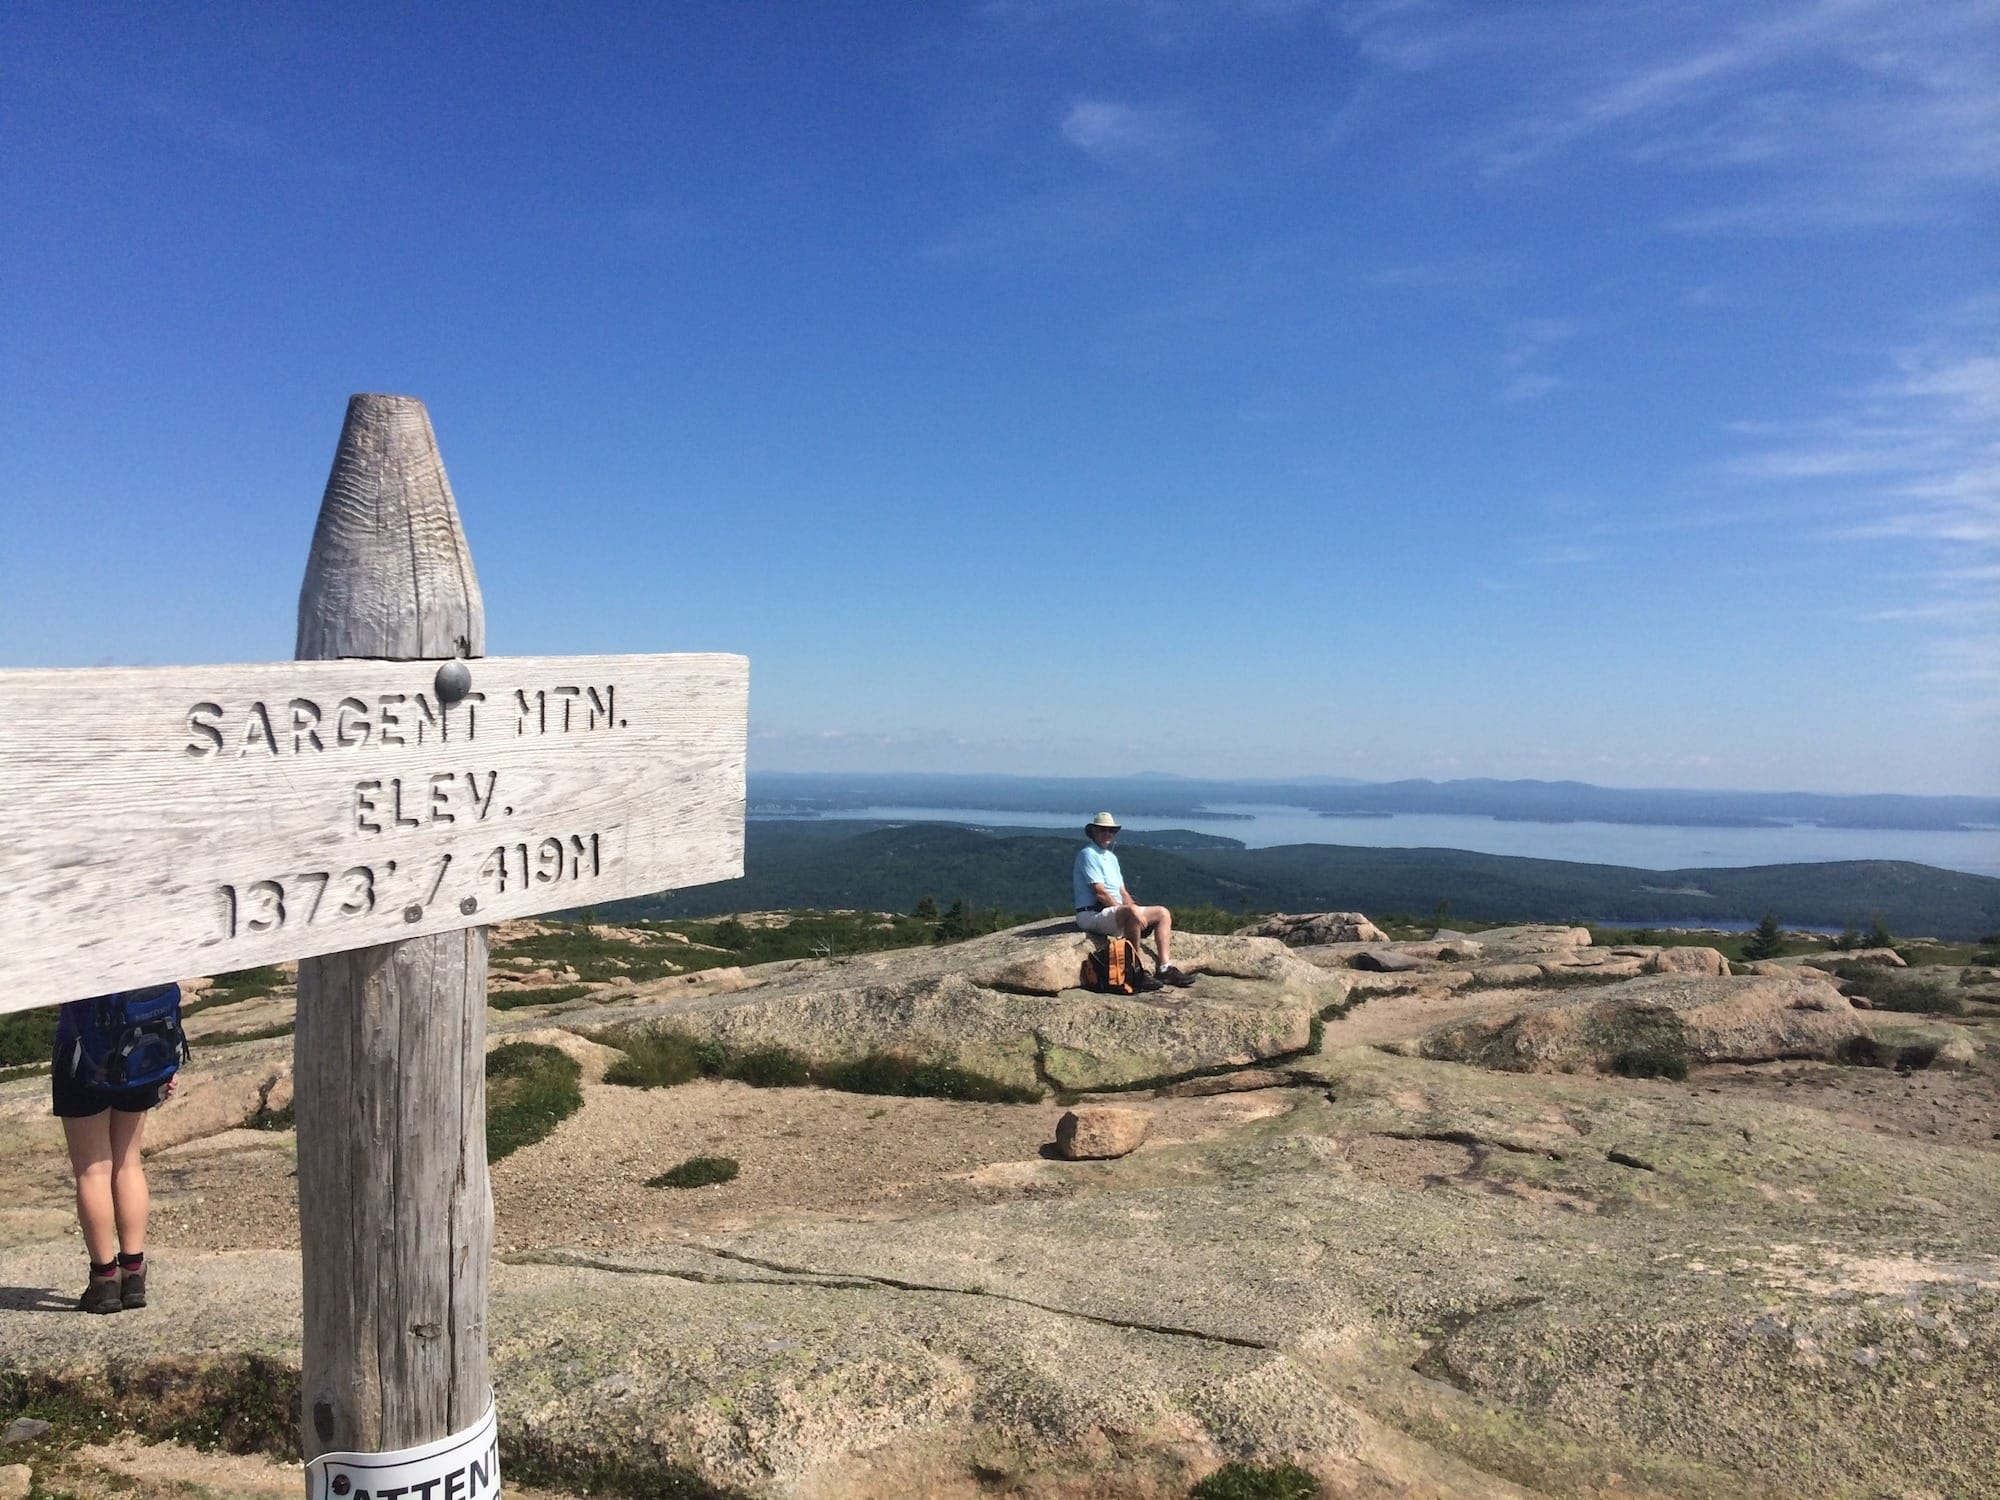 Sargent Mountain is one of the best Acadia National Park trails